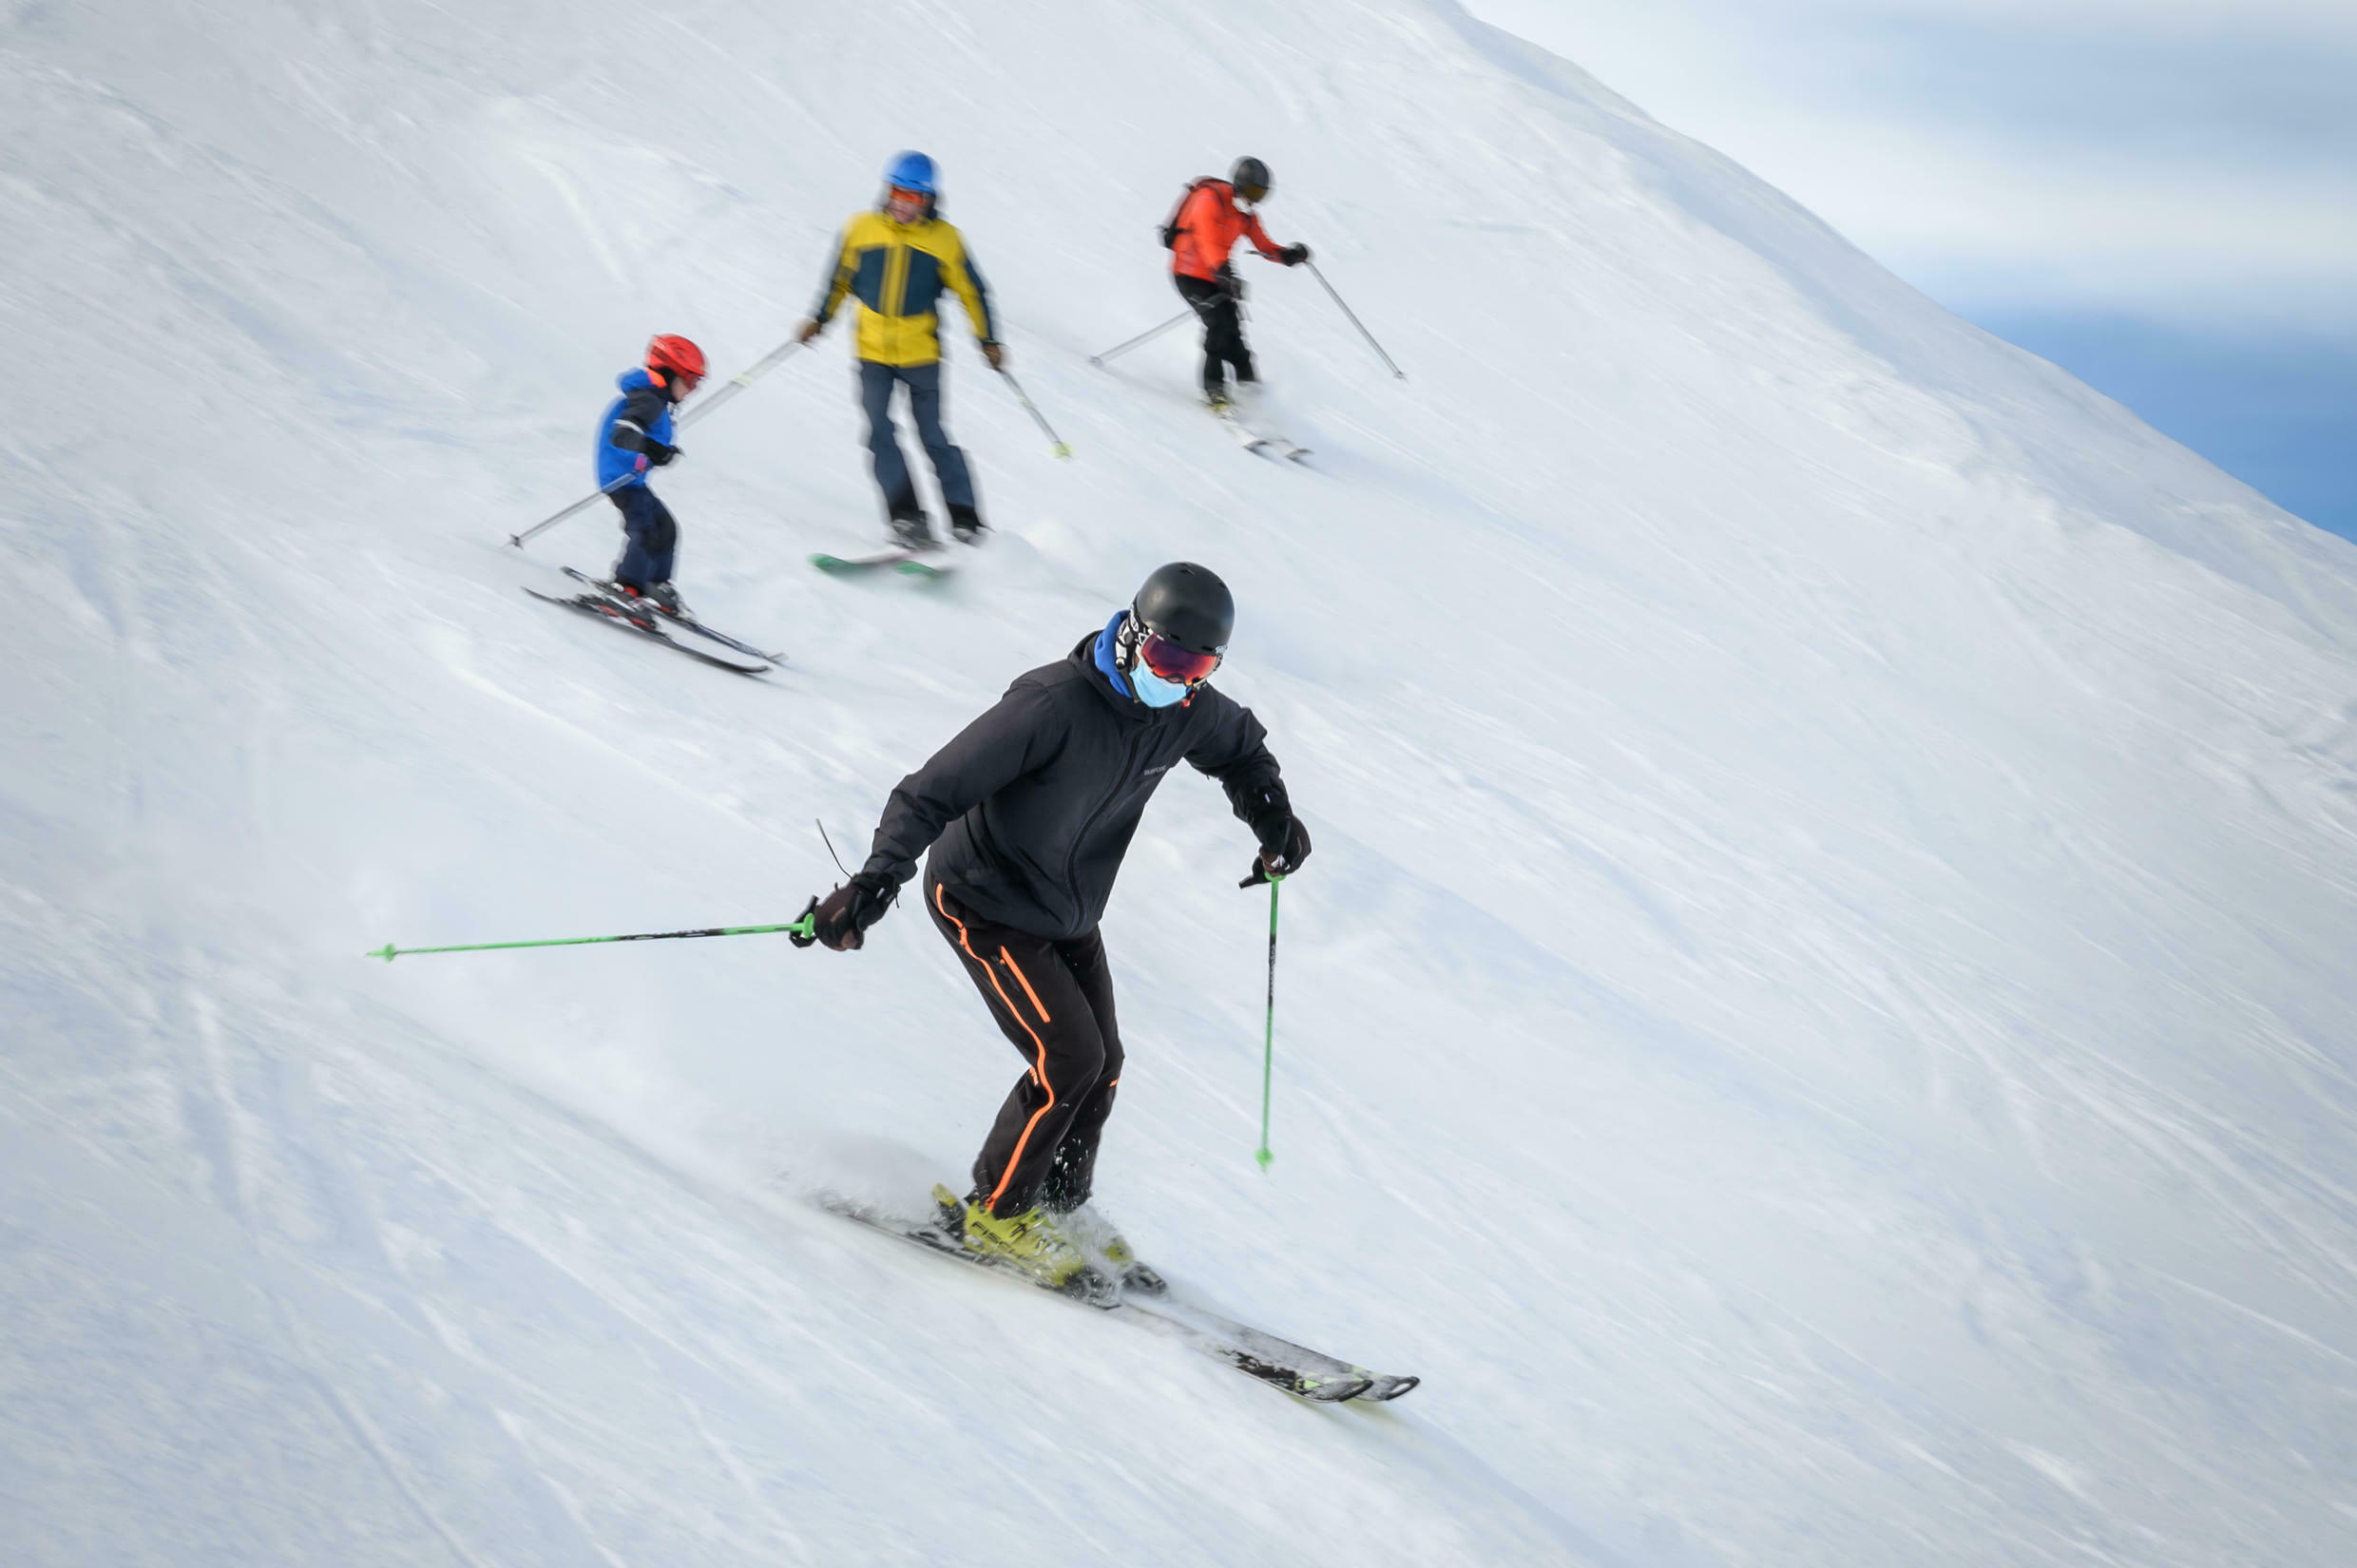 Ski resorts in non-EU member Switzerland are open and operators are hoping for an influx of tourists over Christmas.